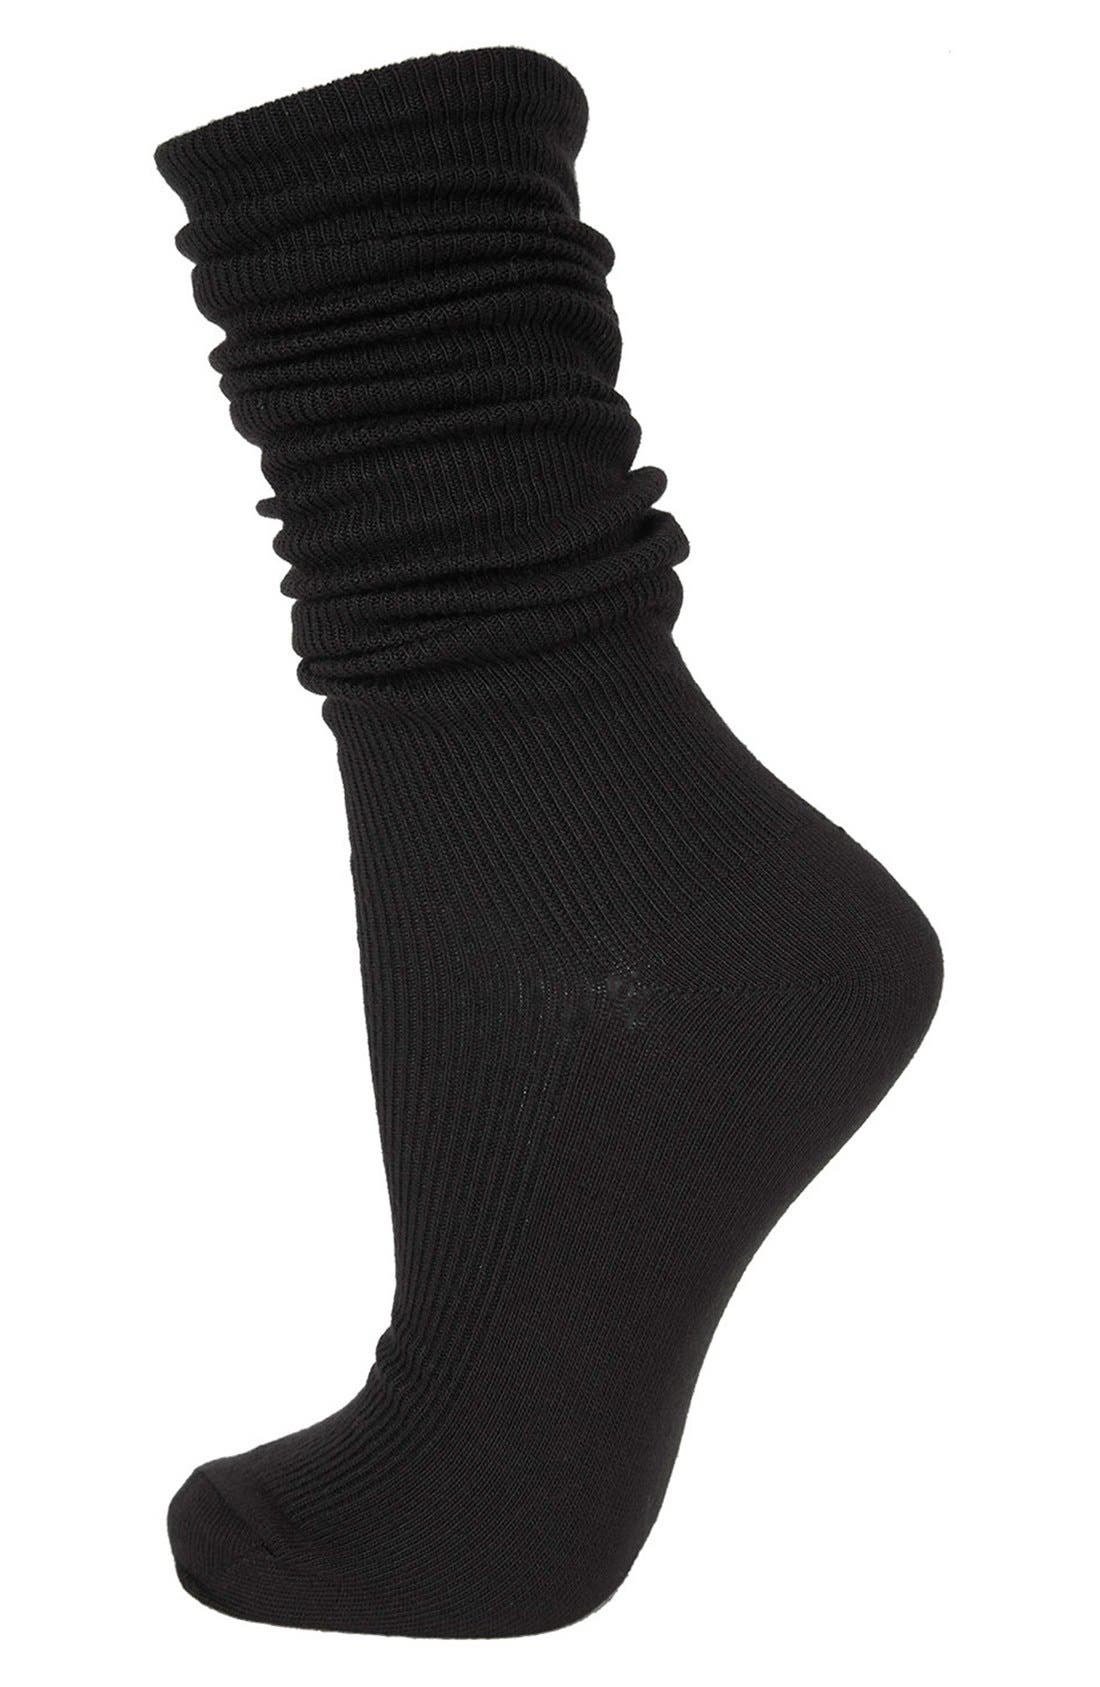 Alternate Image 1 Selected - Topshop Slouchy Ribbed Socks